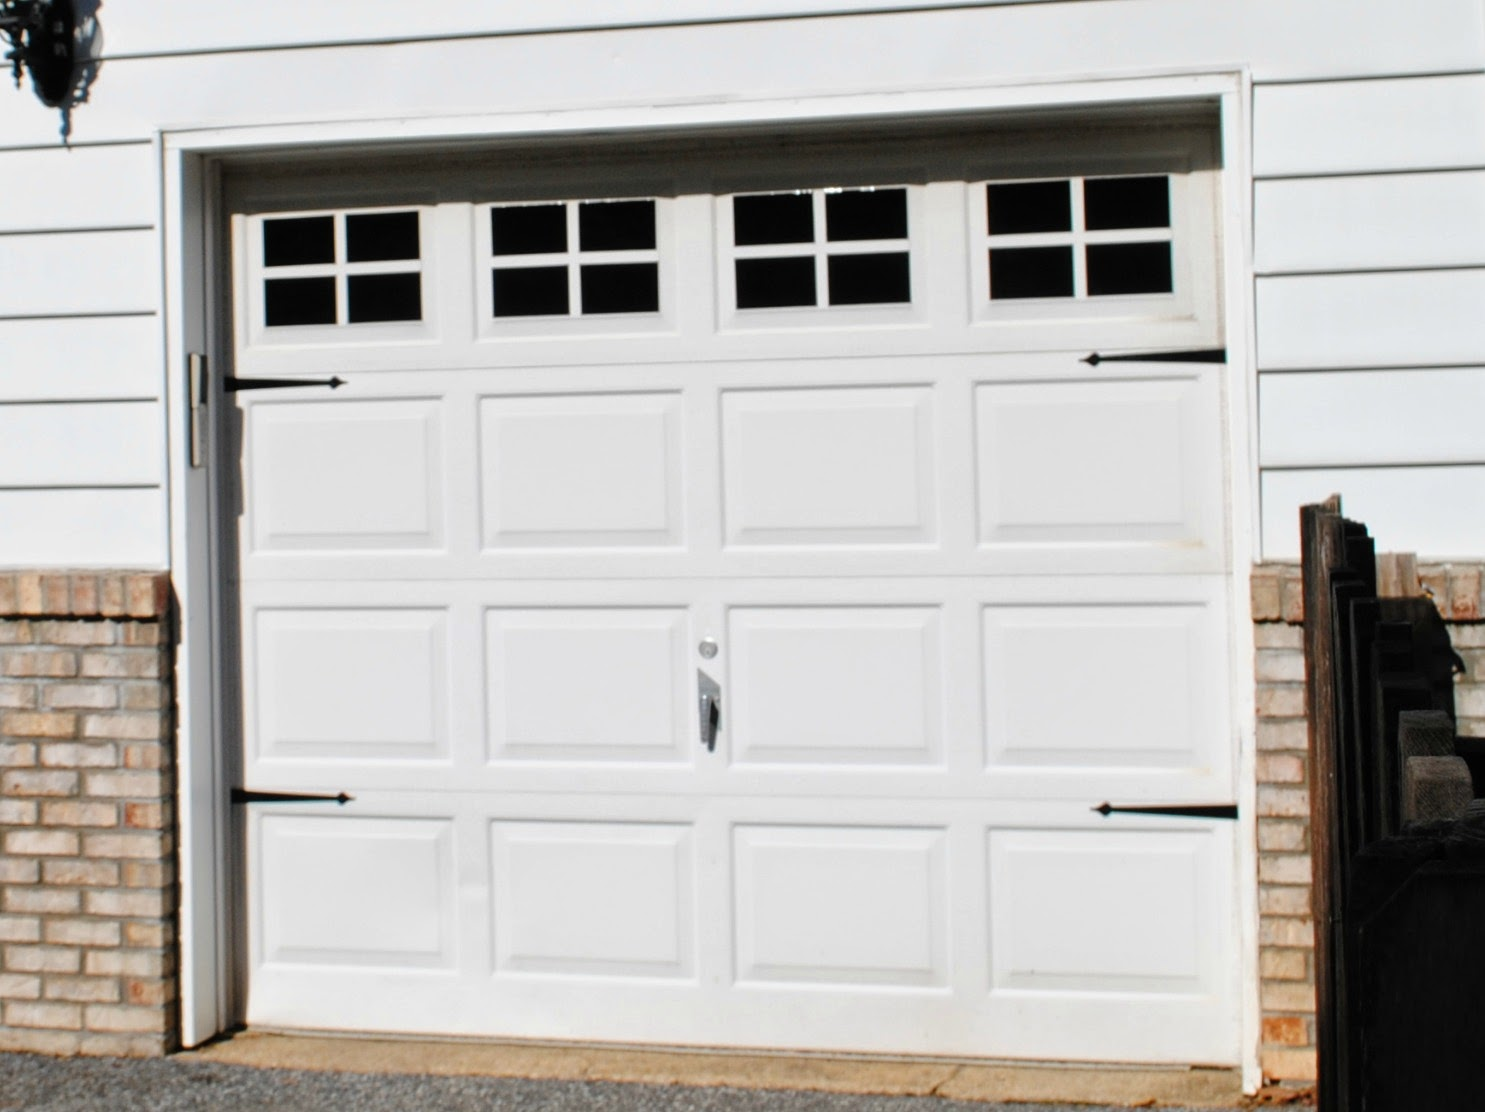 And thatu0027s how I transformed my garage